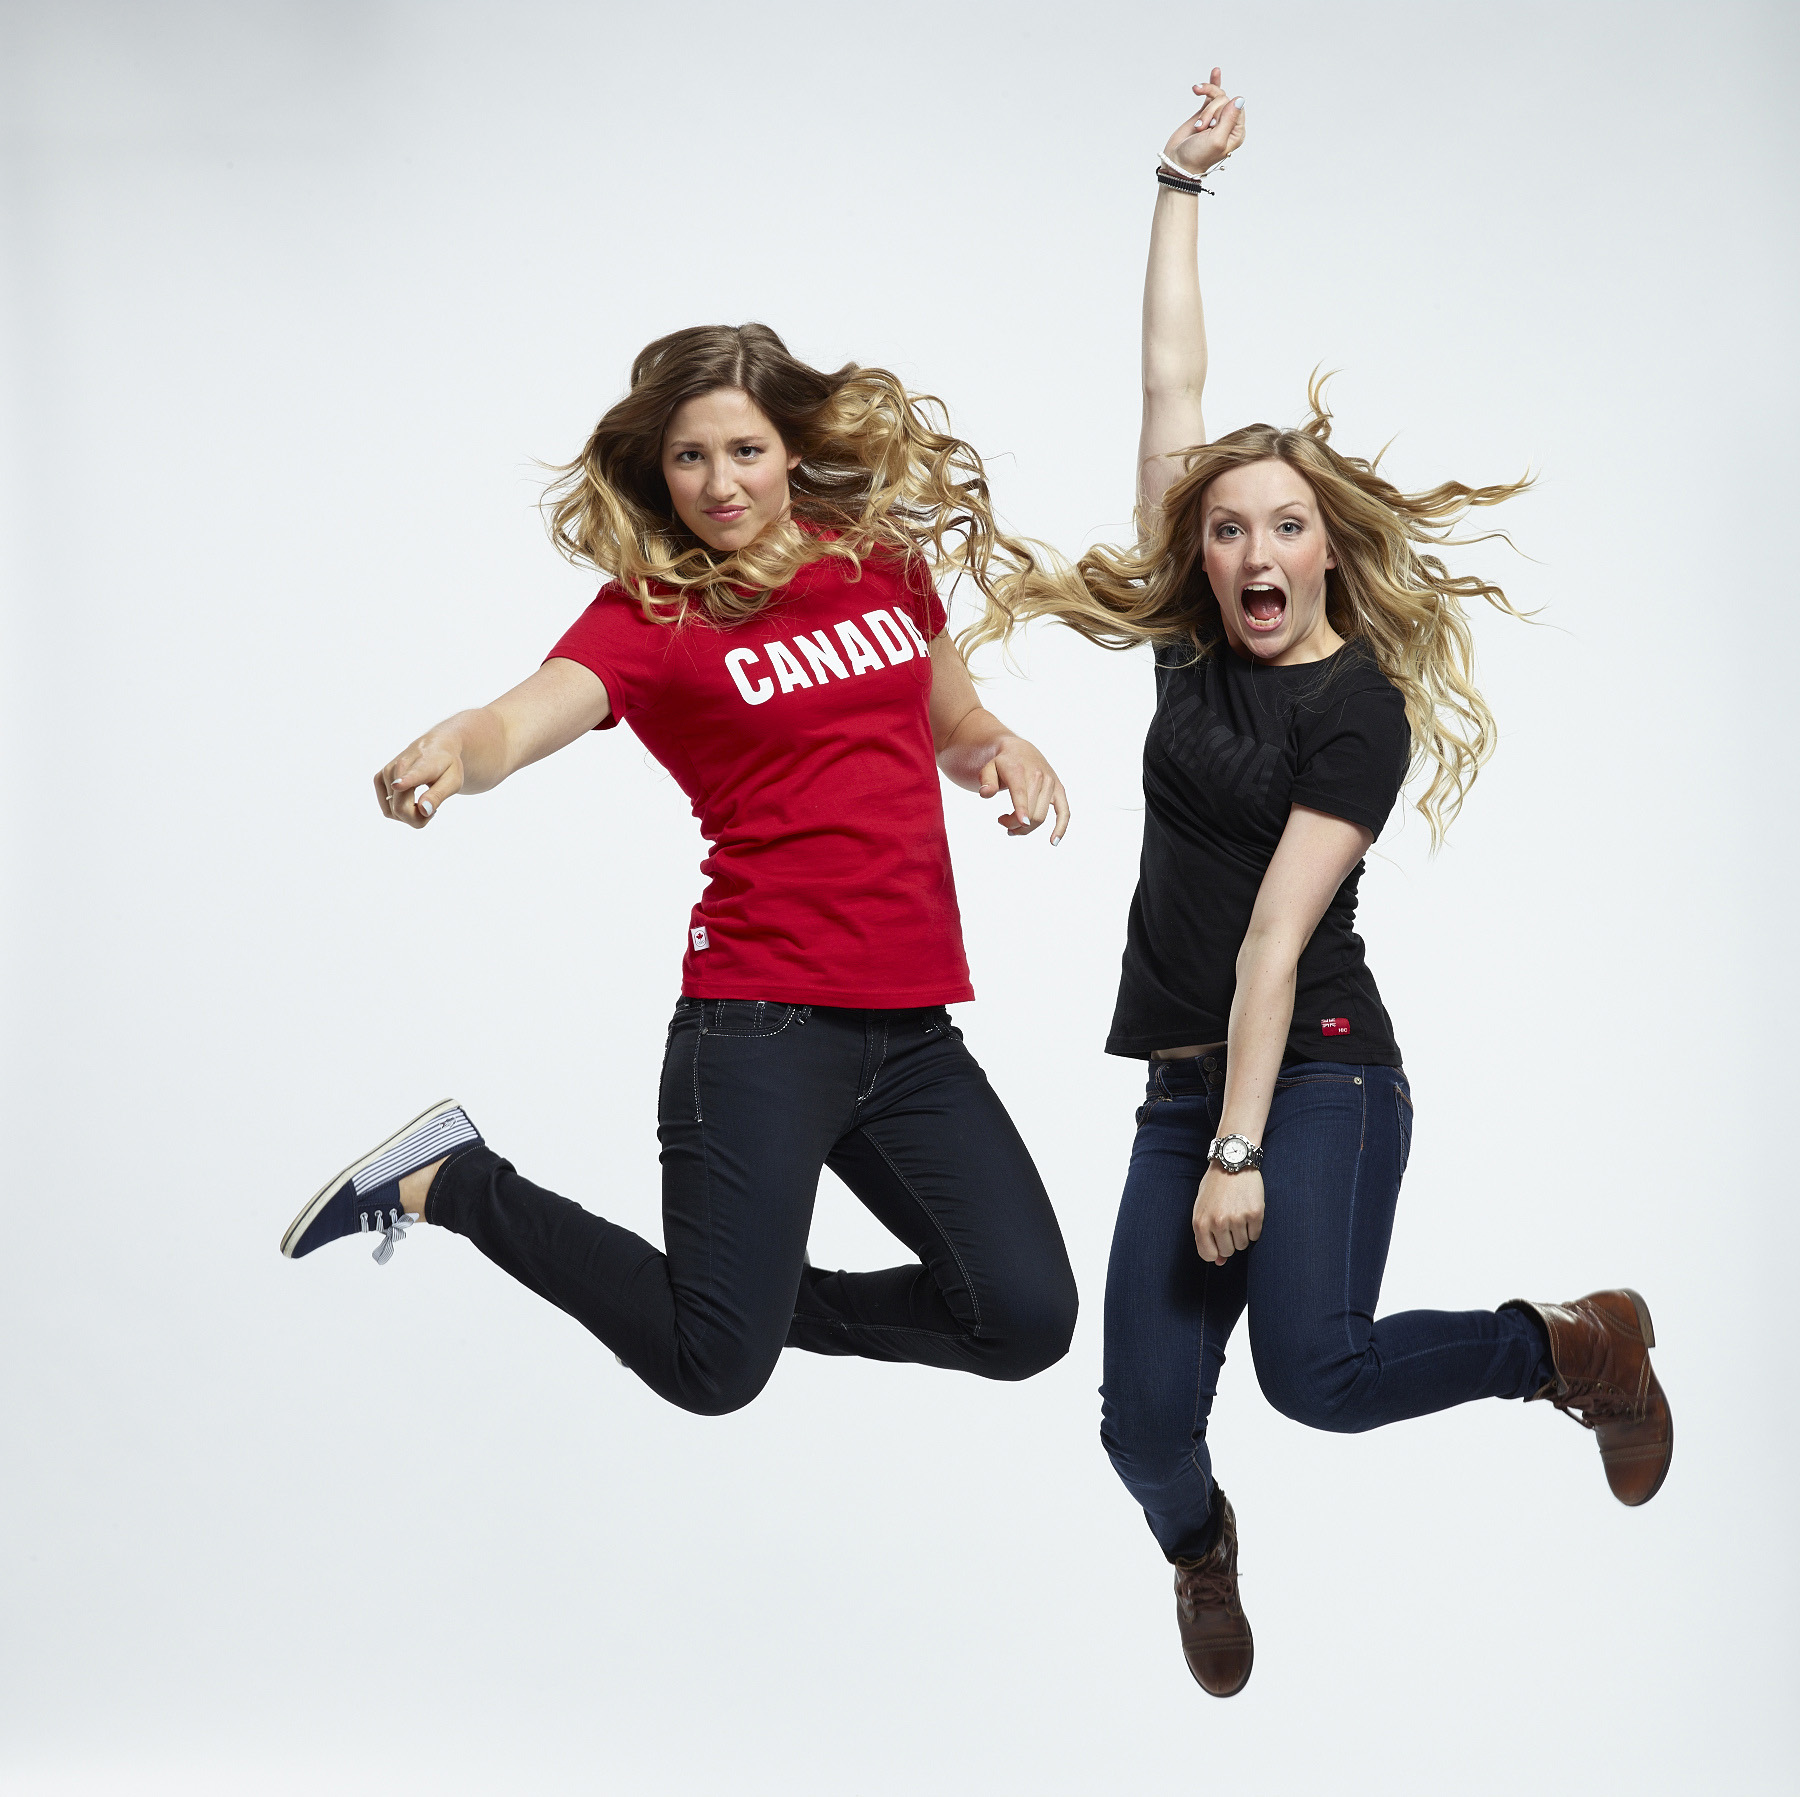 Two smiling female olympians jumping